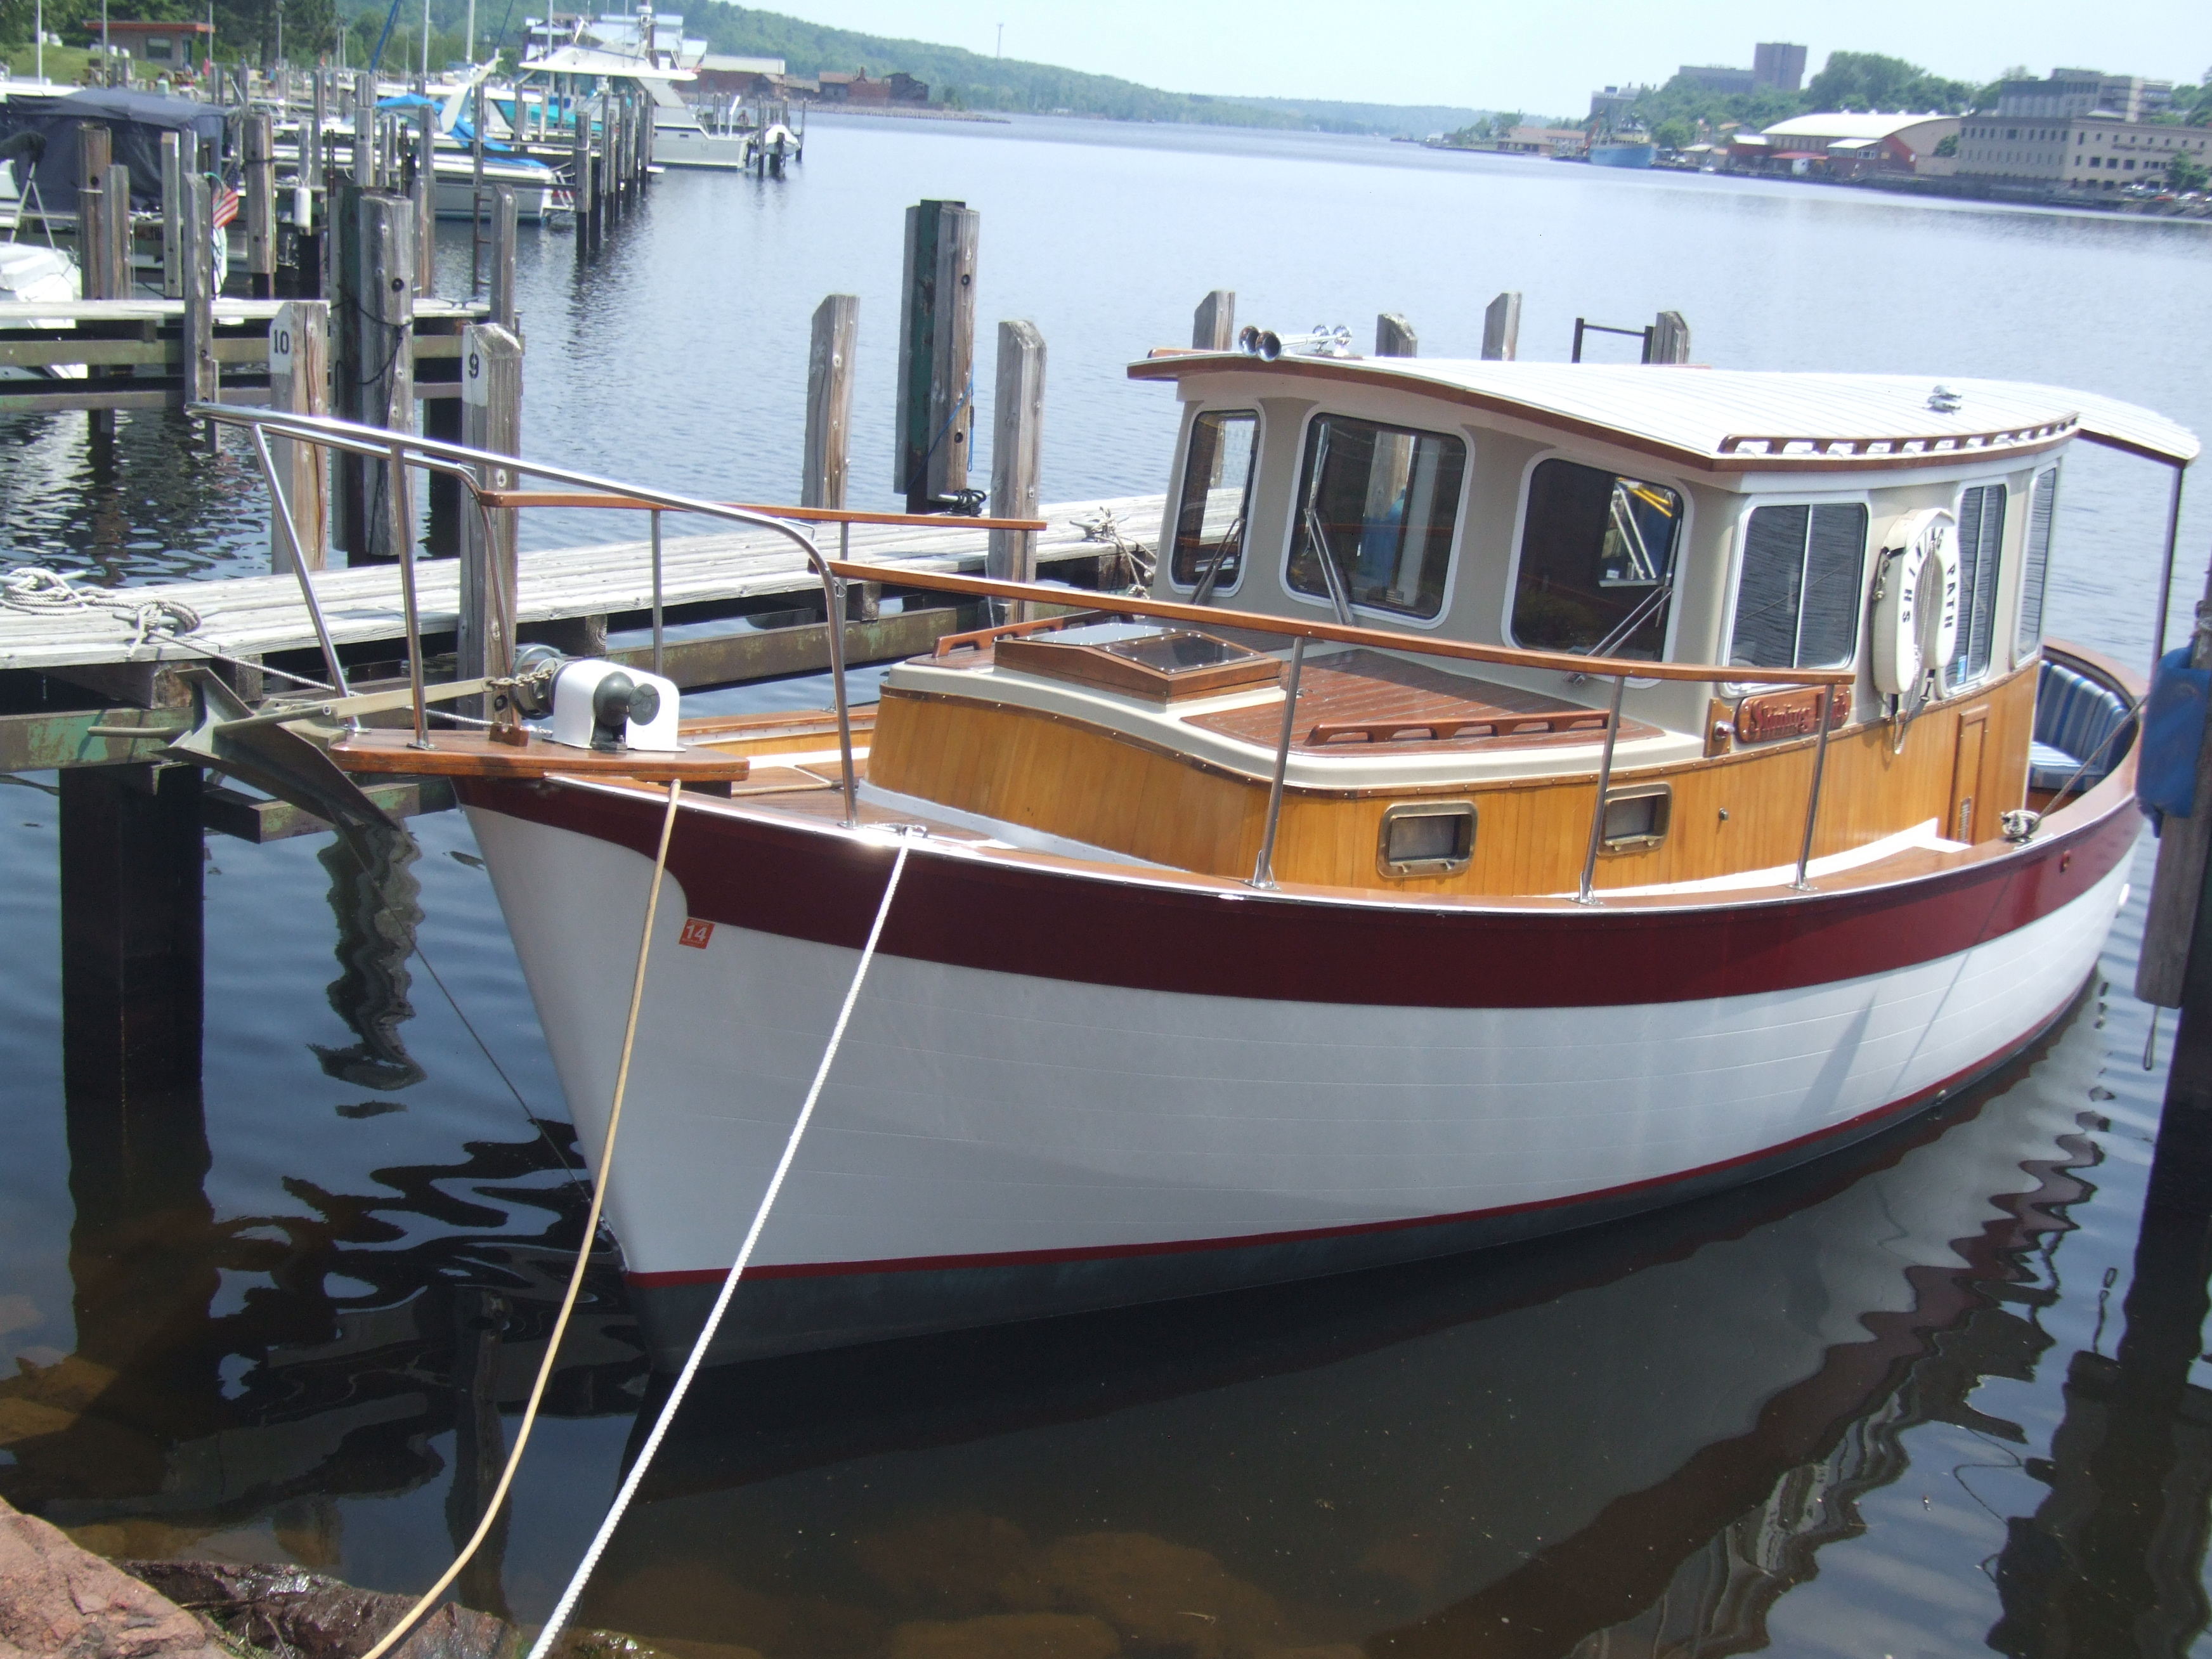 Trawlers For Sale: Trawler For Sale Lake Superior